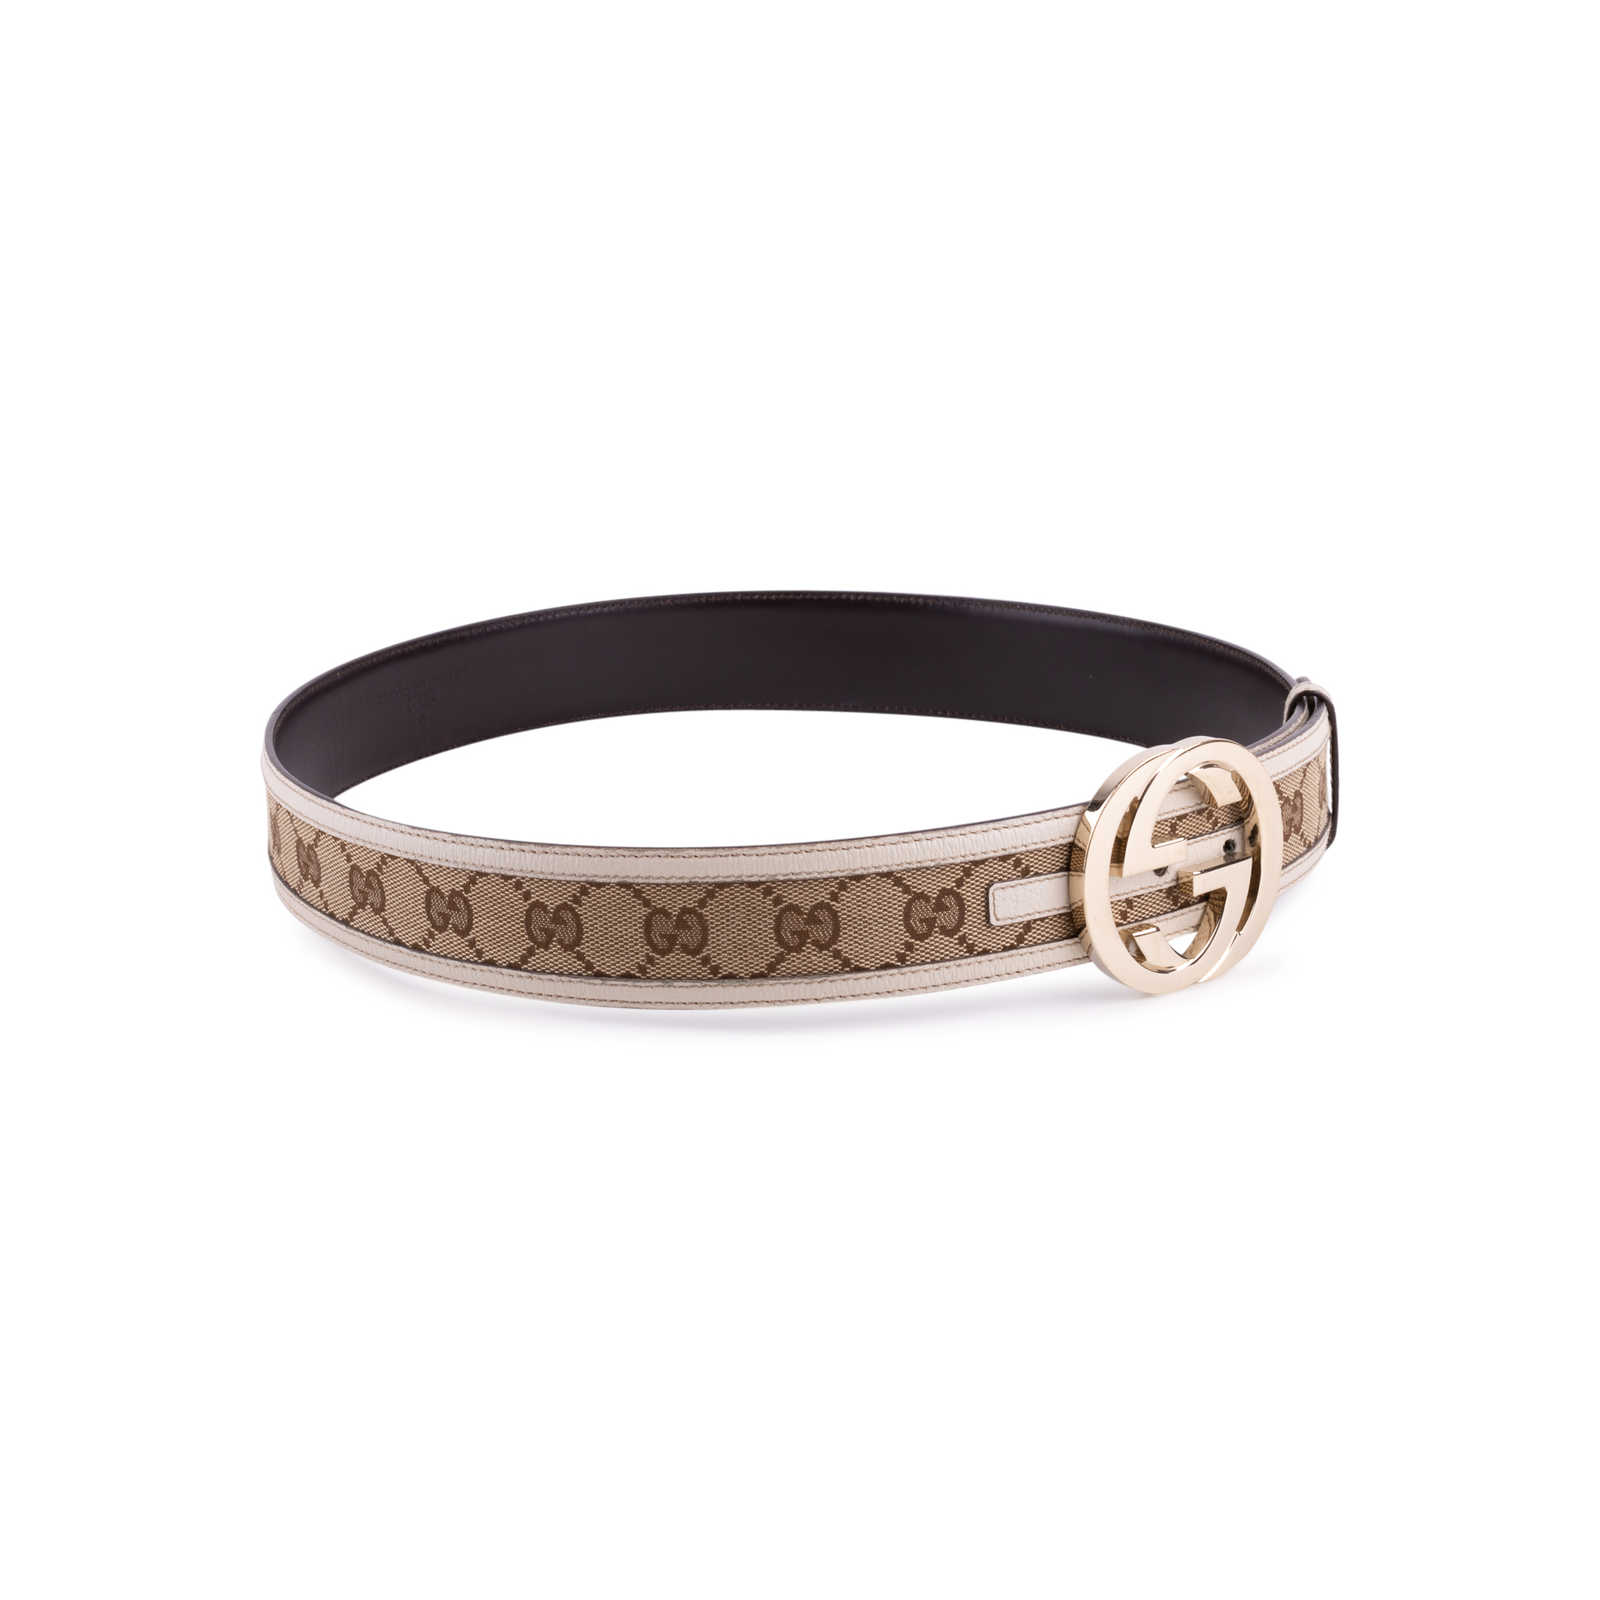 3e74cf224 ... Authentic Second Hand Gucci Monogram Leather Belt (PSS-647-00006) -  Thumbnail ...